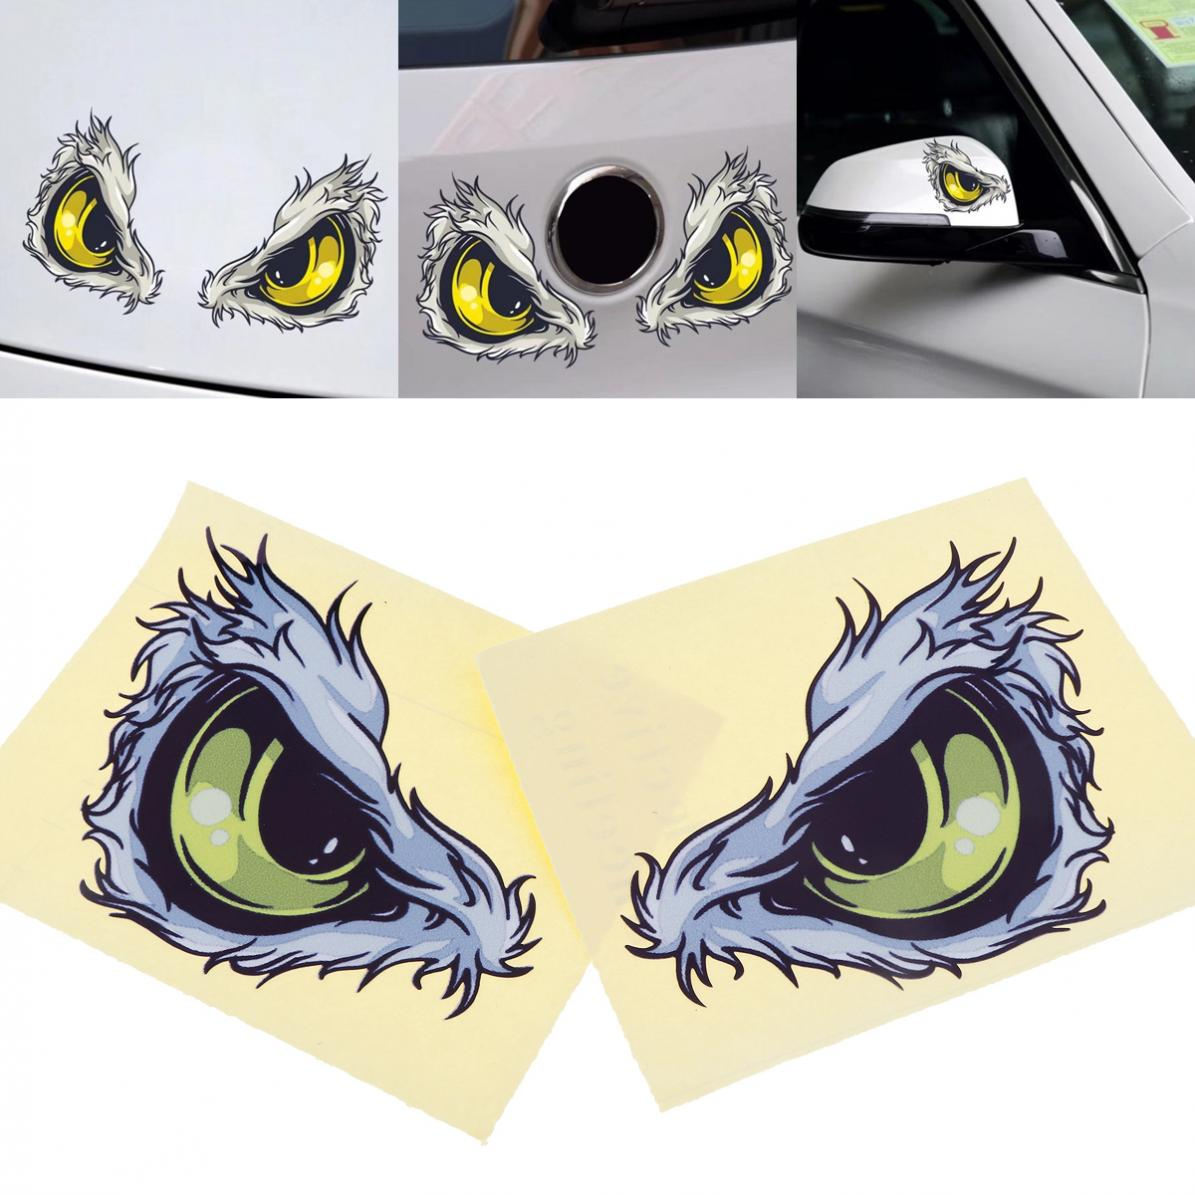 2pcs 3D 10 x 8CM Waterproof Reflective Material Eye Pattern Creative Funny Stereoscopic Car Sticker Accessories ...